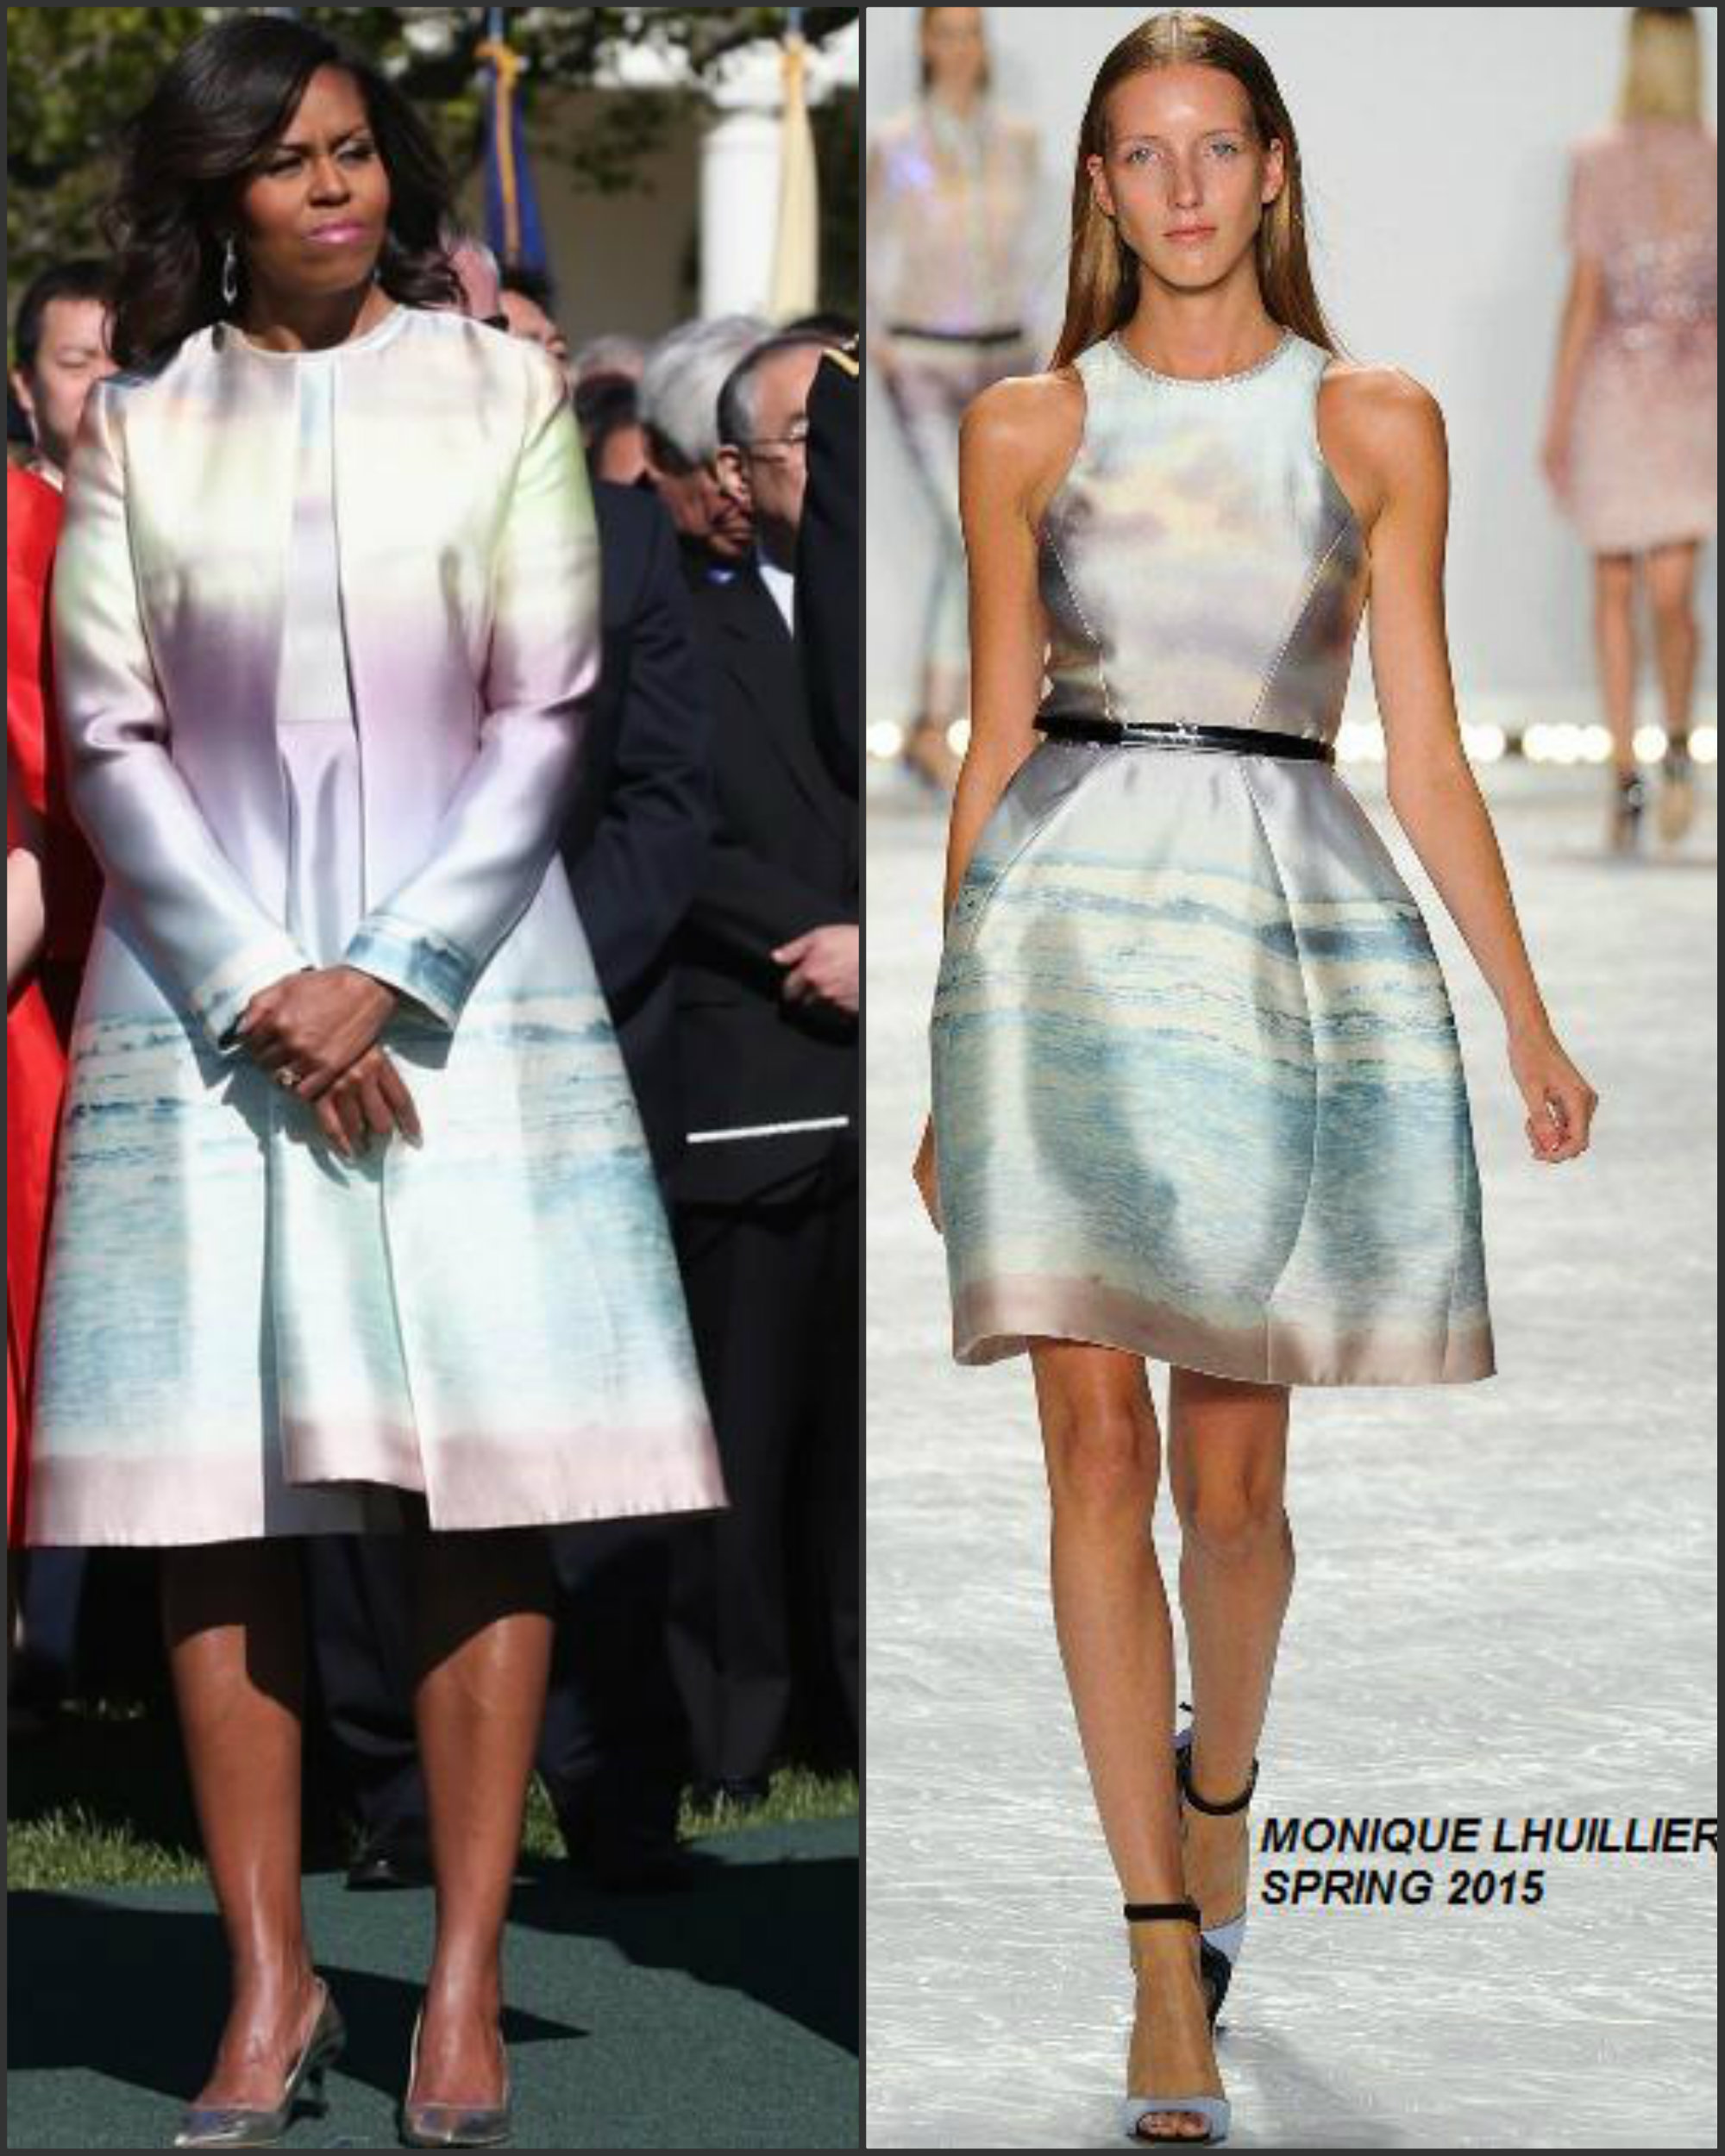 Michelle-Obama-in-monique-lhuillier-at-the-white-house-arrival-ceremony